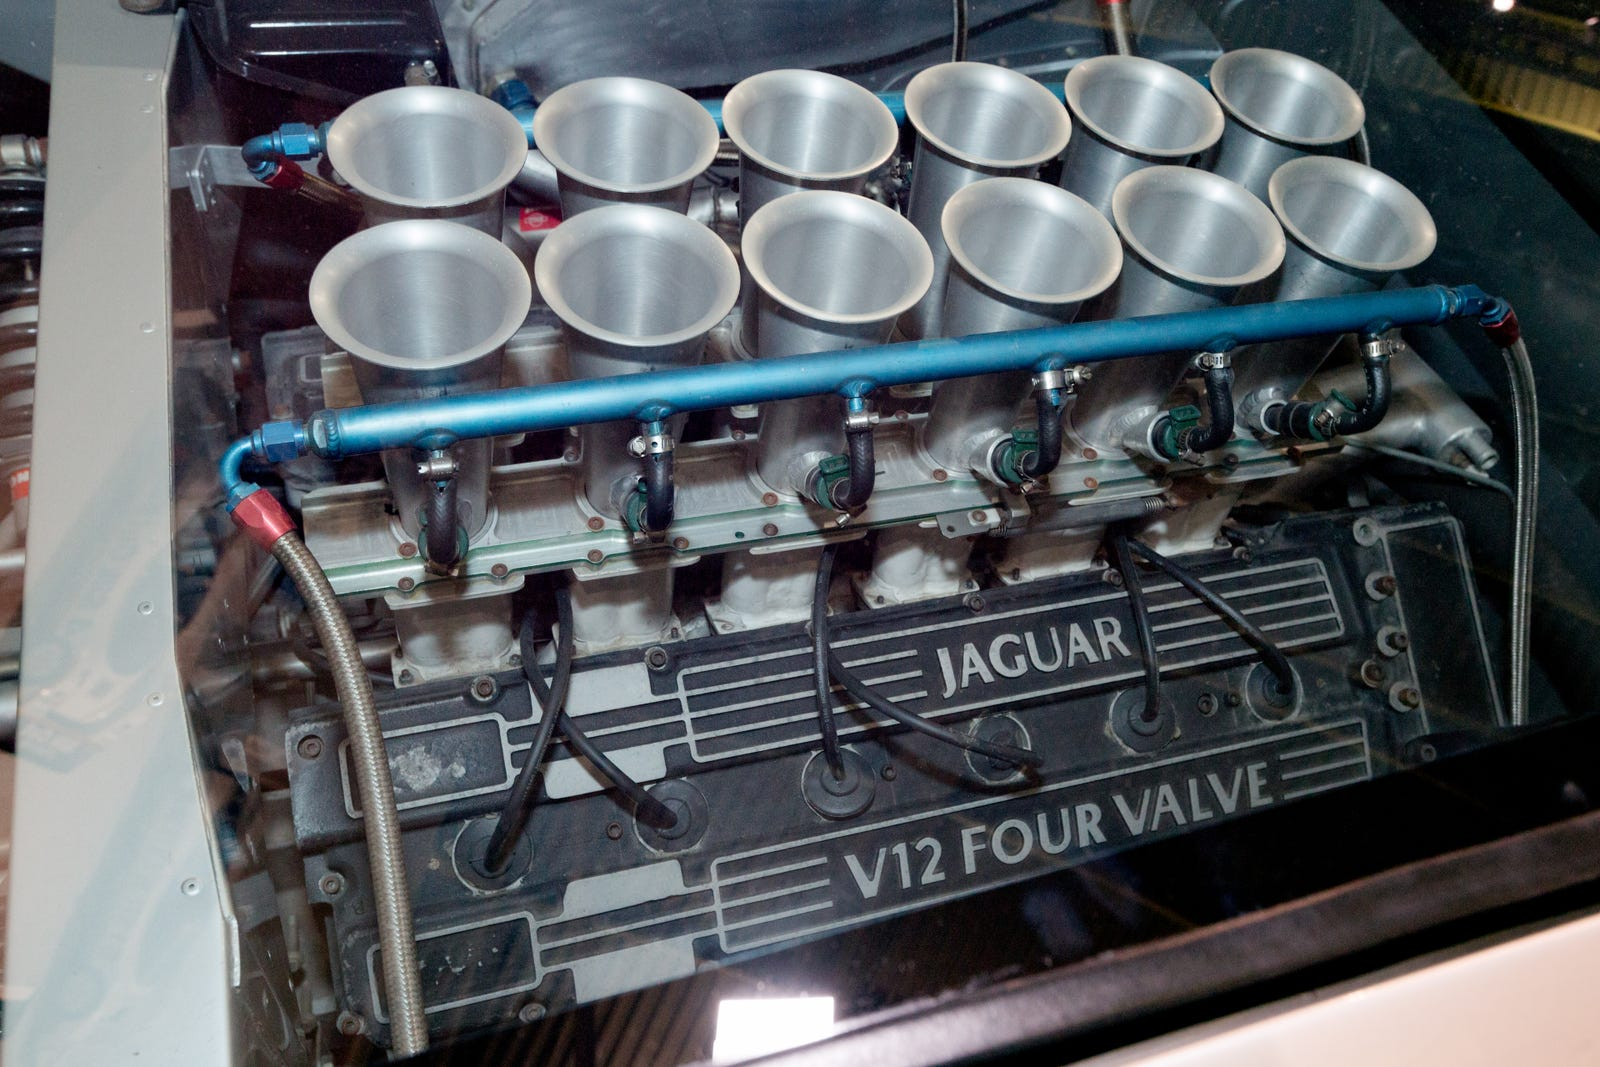 This is the V12 engine that XJ220 buyers were promised.